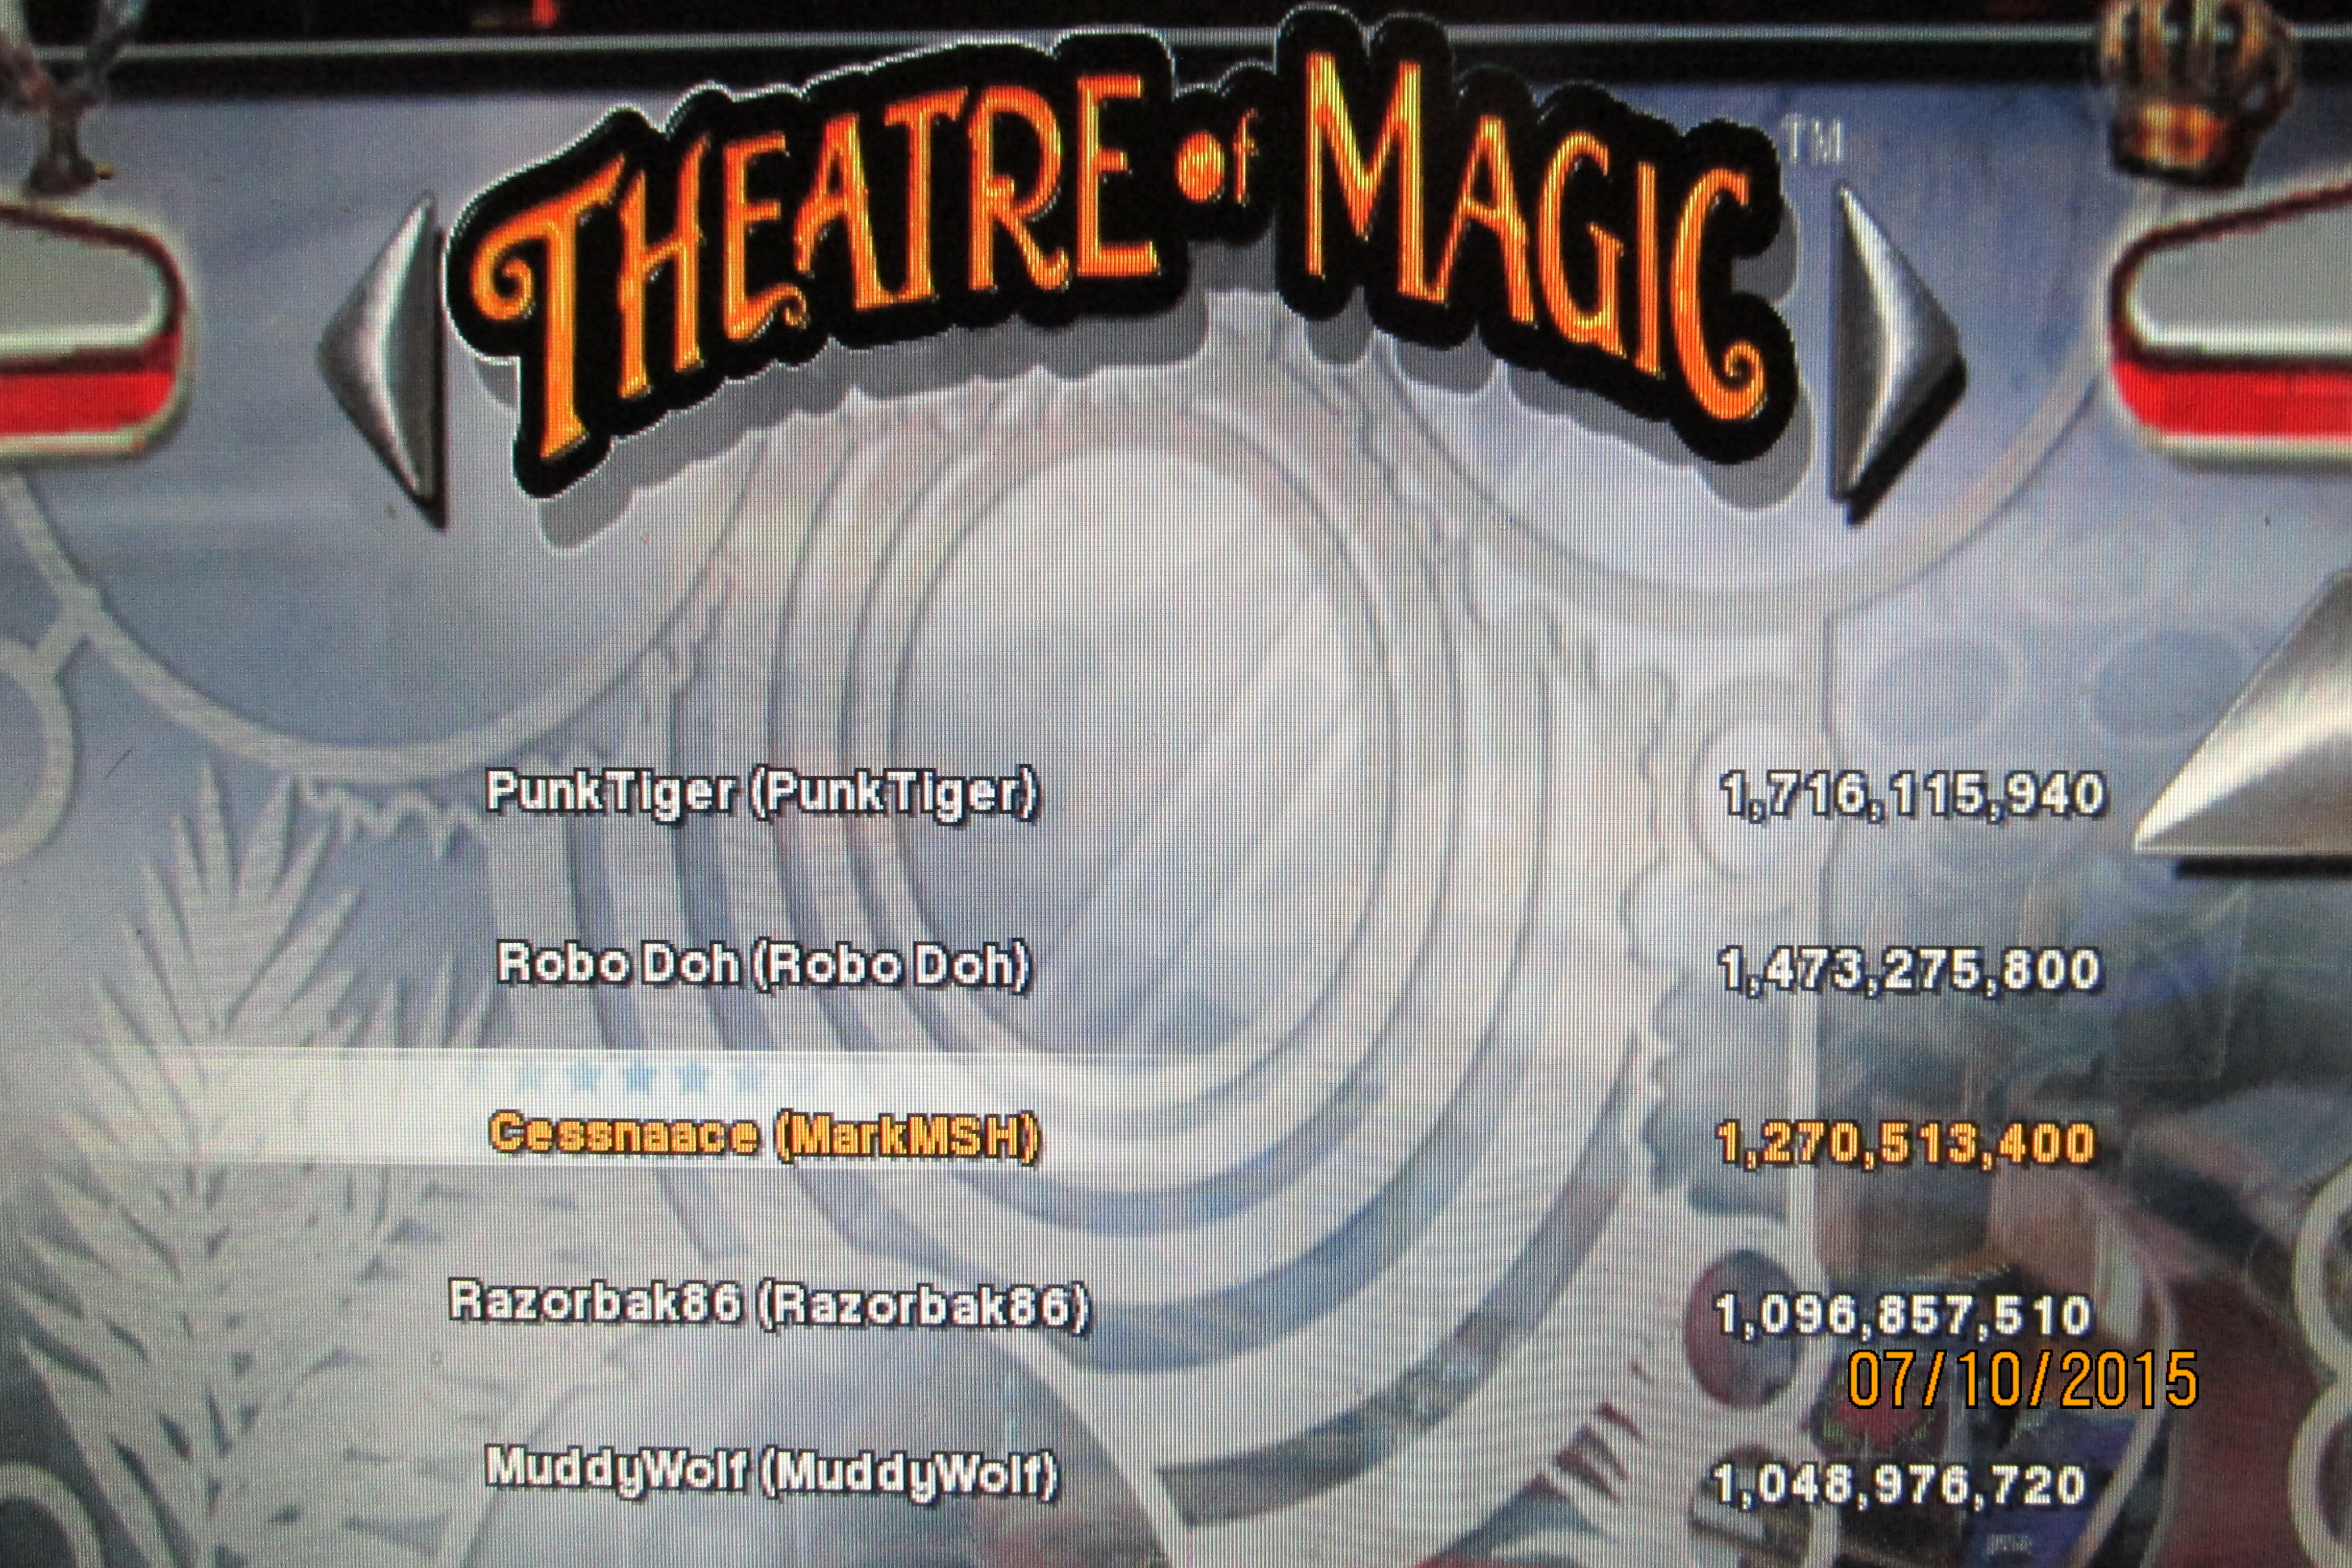 Mark: Pinball Arcade: Theatre of Magic (PC) 1,270,513,400 points on 2015-07-10 18:18:55